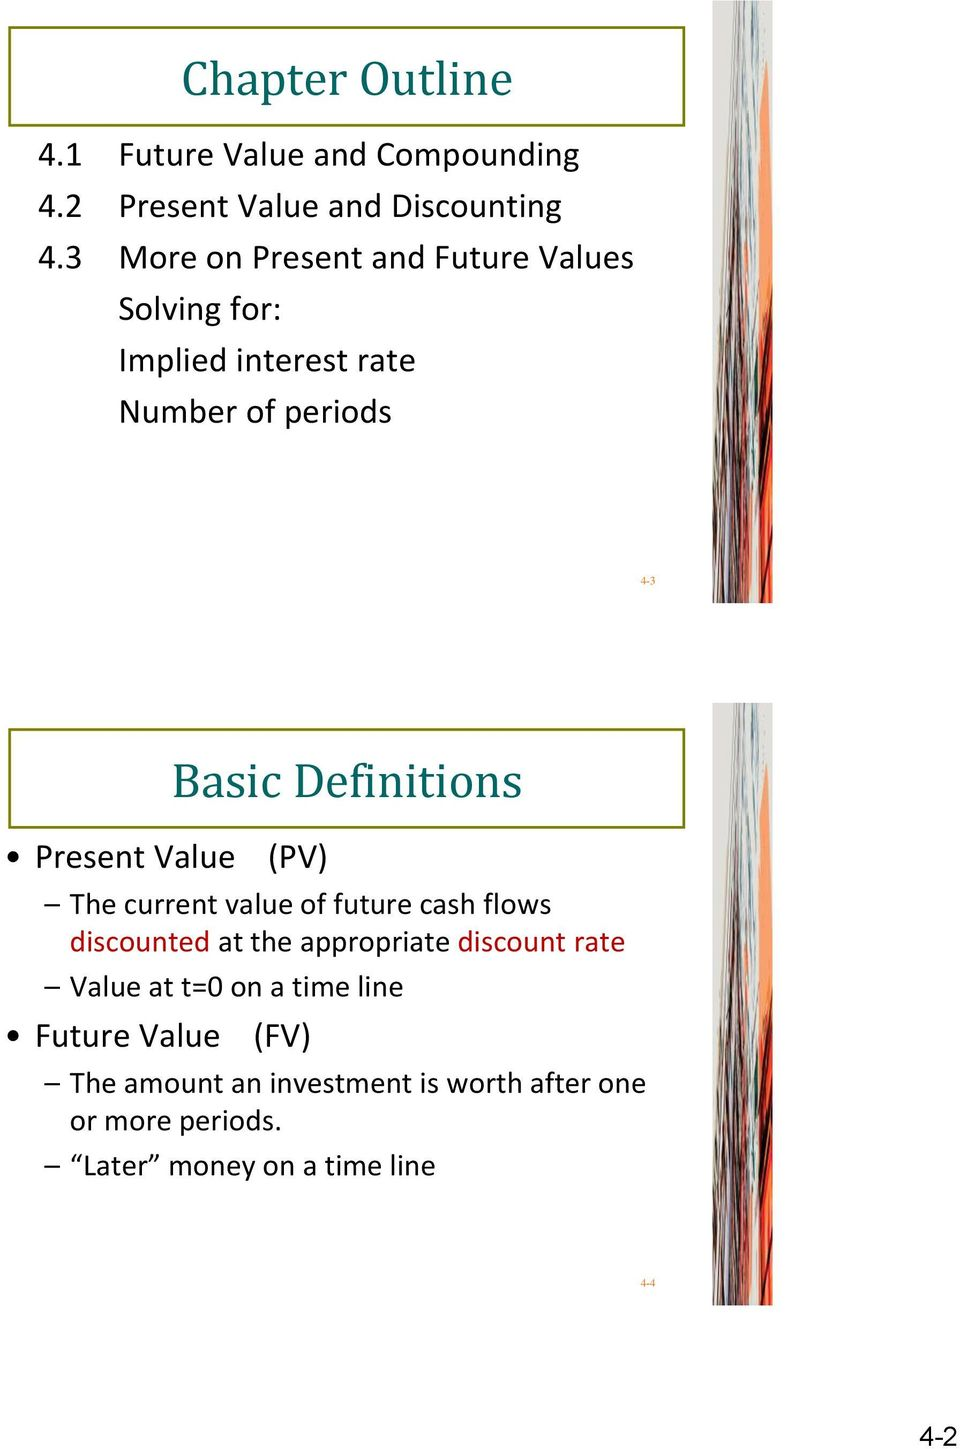 Basic Definitions (PV) The current value of future cash flows discounted at the appropriate discount rate